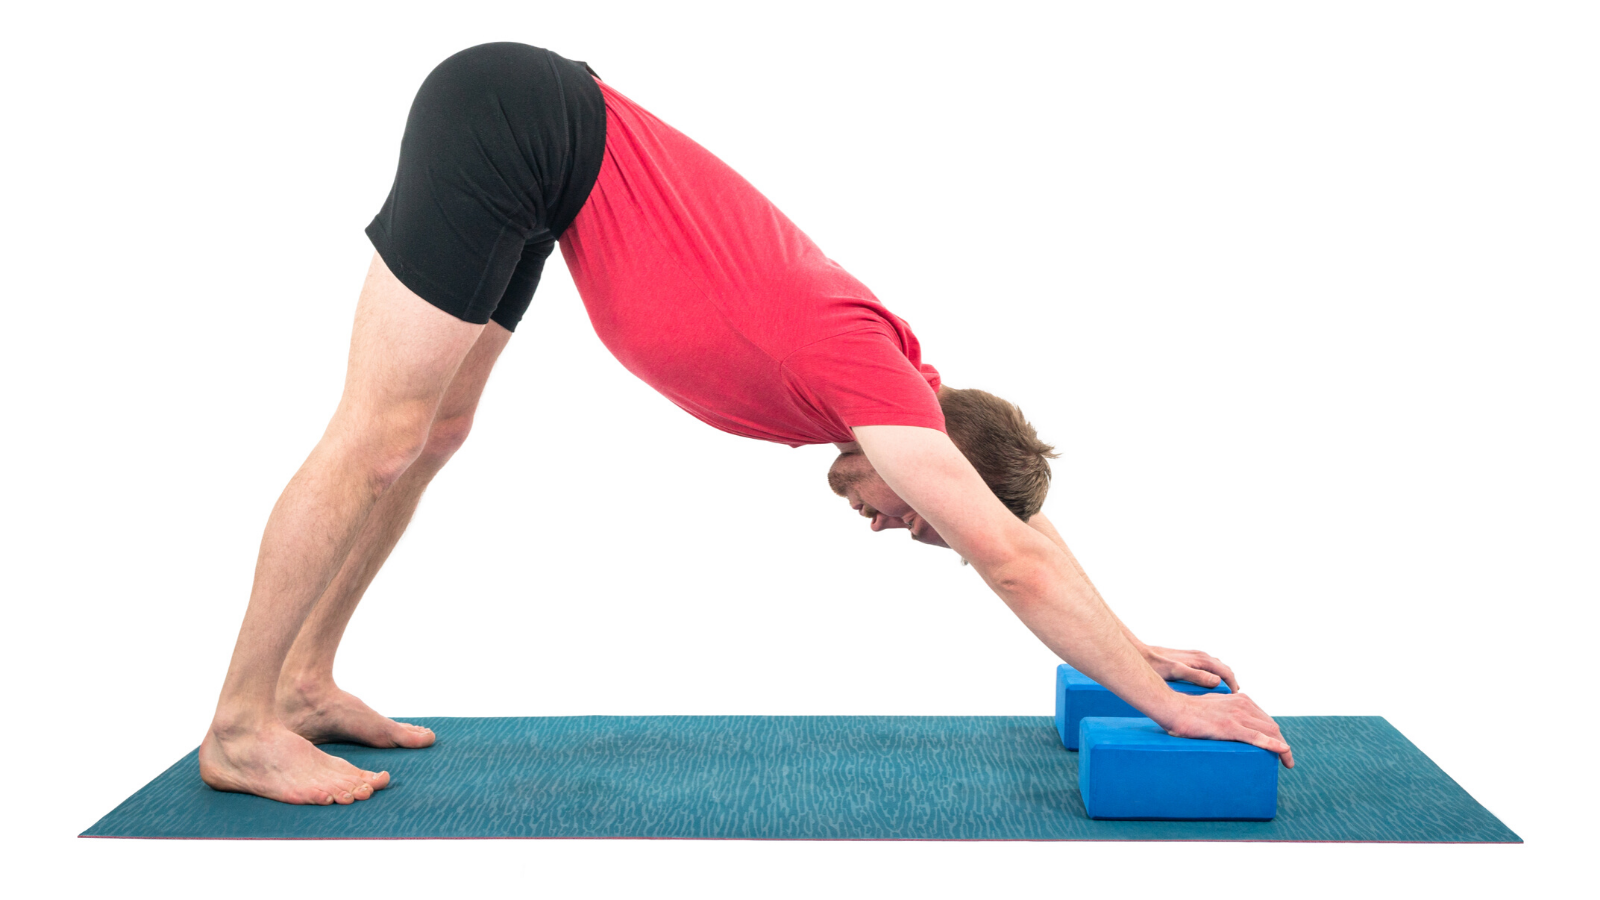 adho-mukha-svanasana-downward-facing-dog-yoga-pose